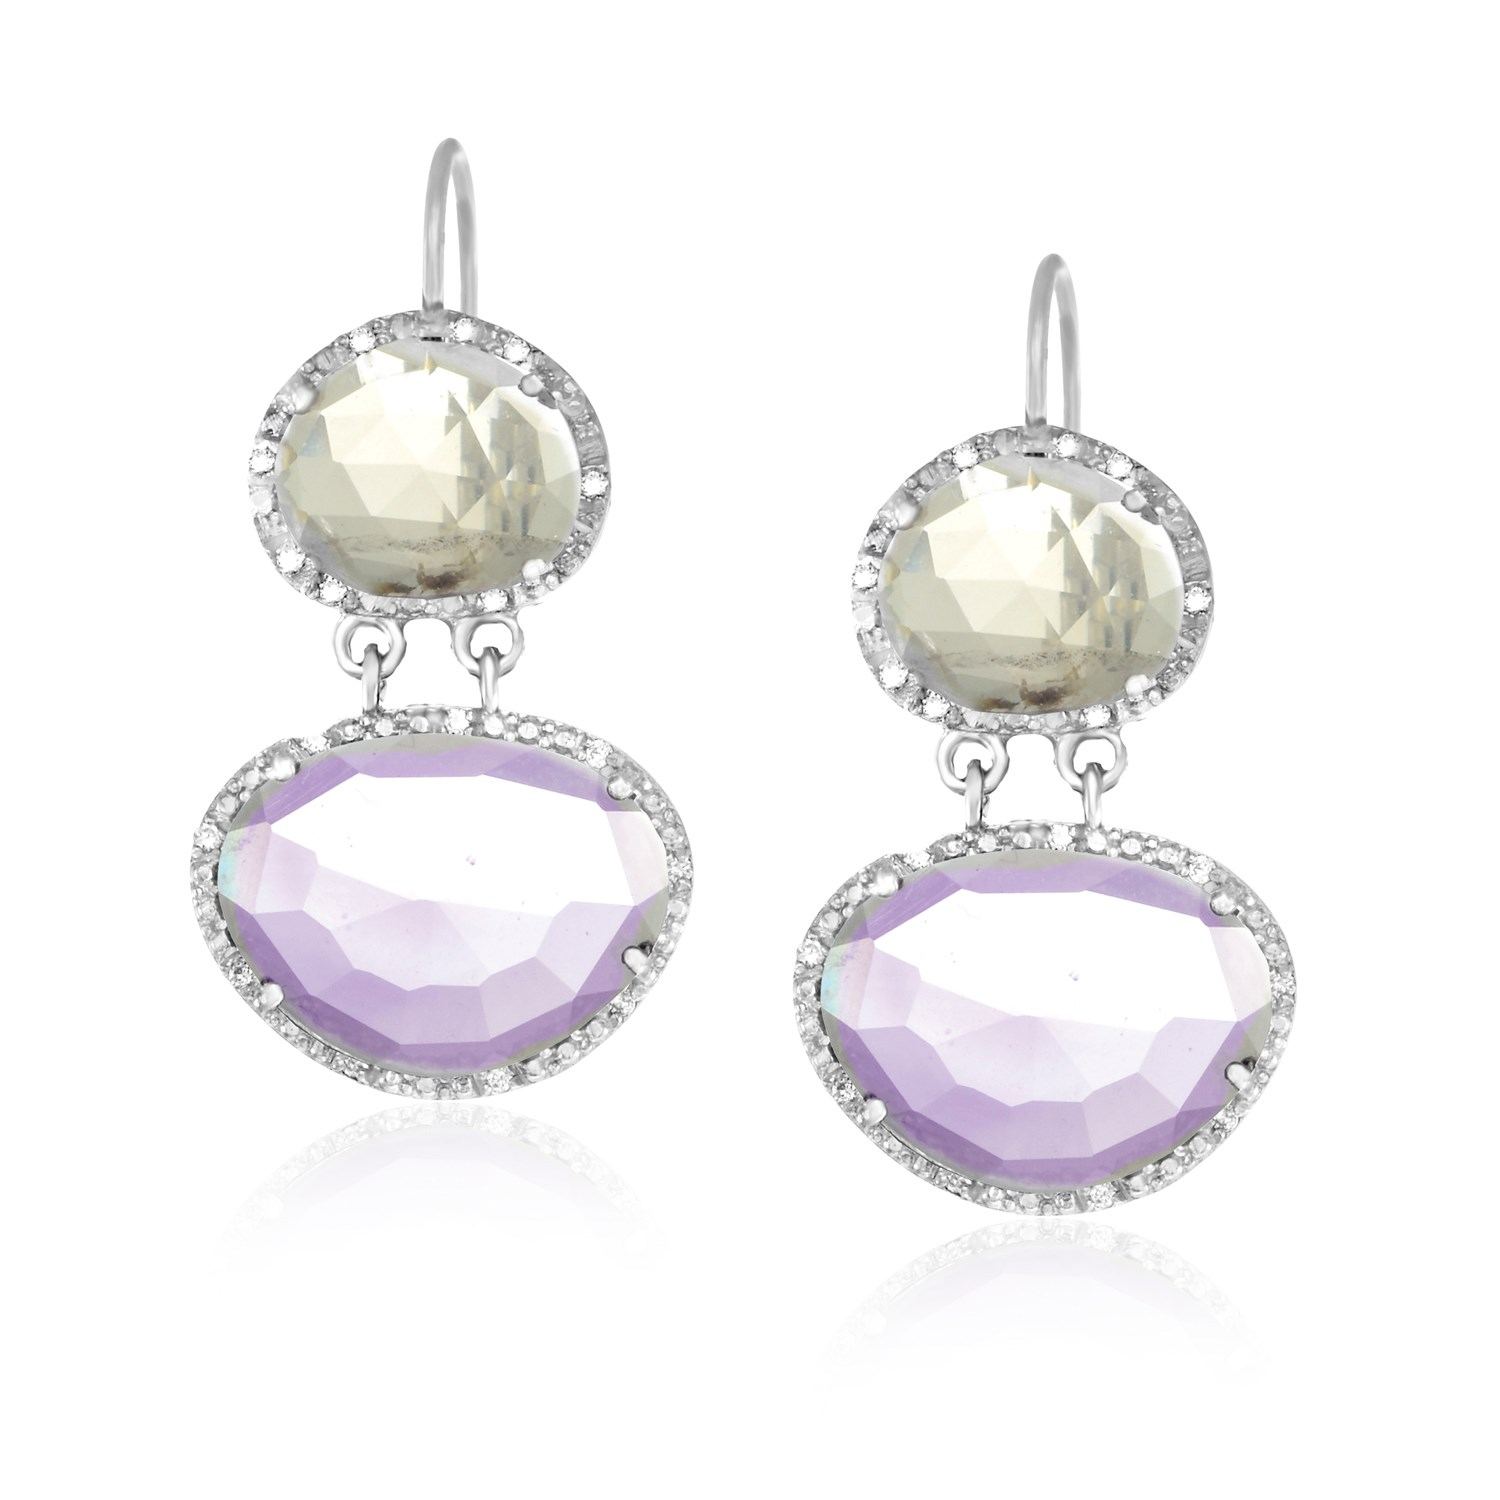 Sterling Silver Layered Earrings with Amethyst  Quartz  and Diamonds